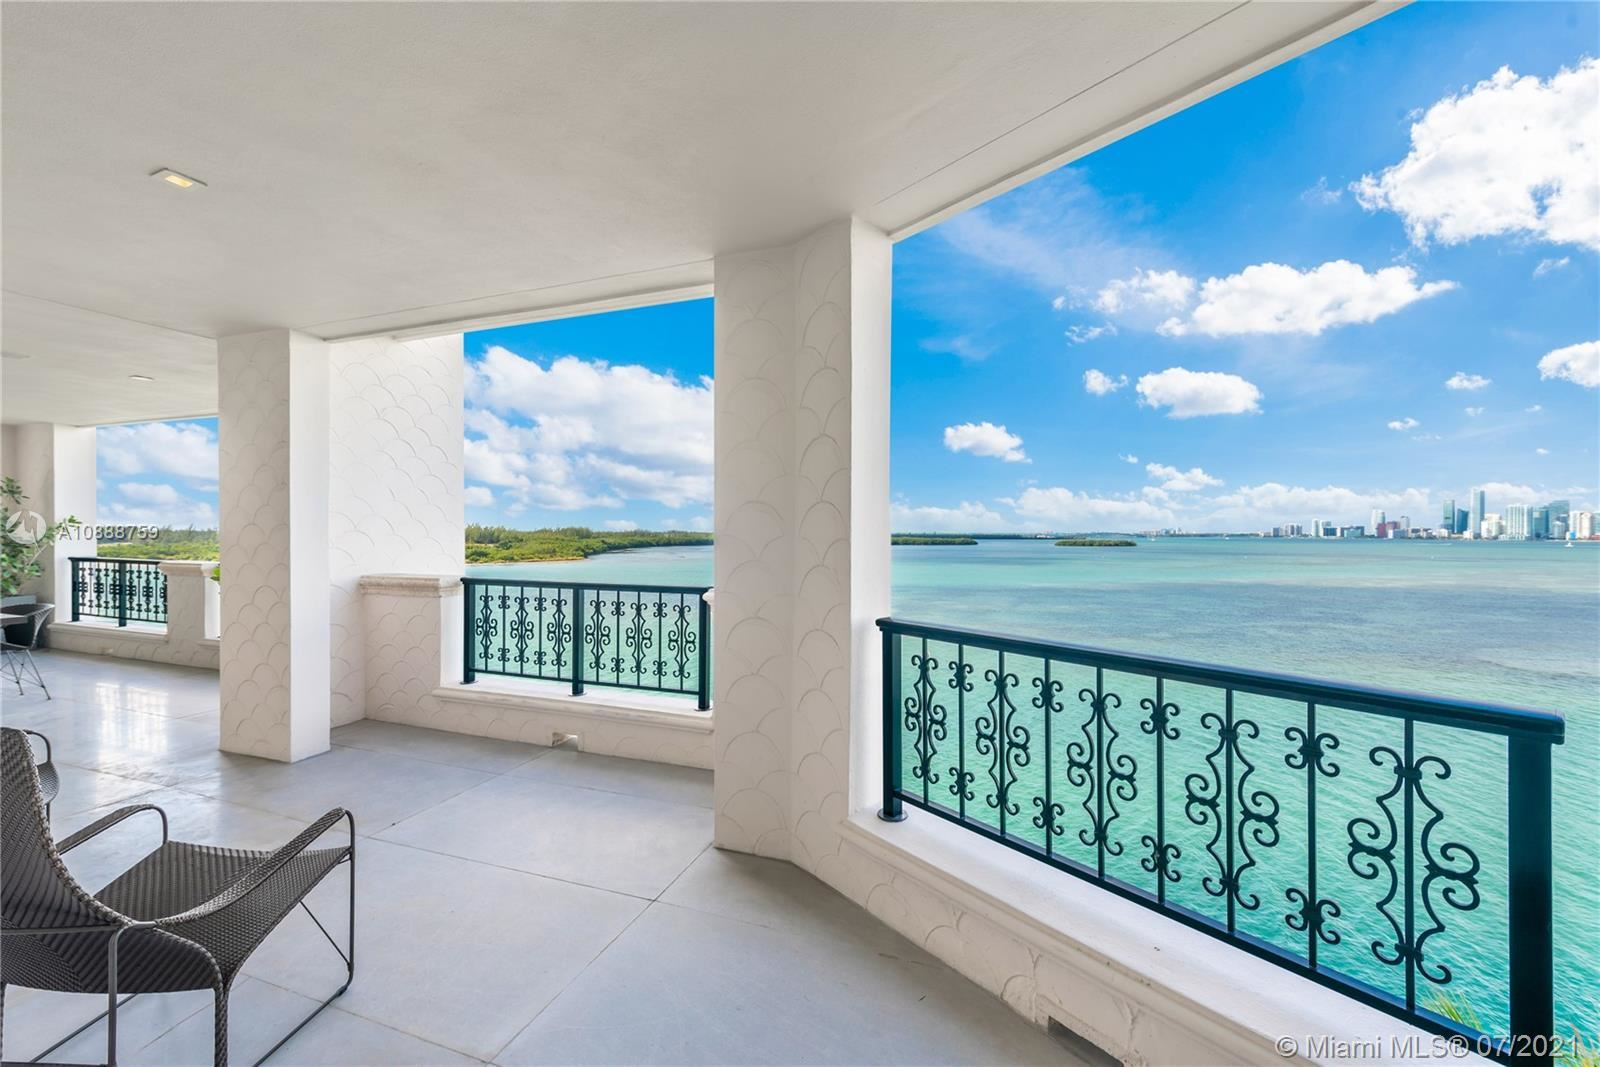 Photo 54 of Listing MLS a10888759 in 5282 Fisher Island Dr #5282 Miami FL 33109